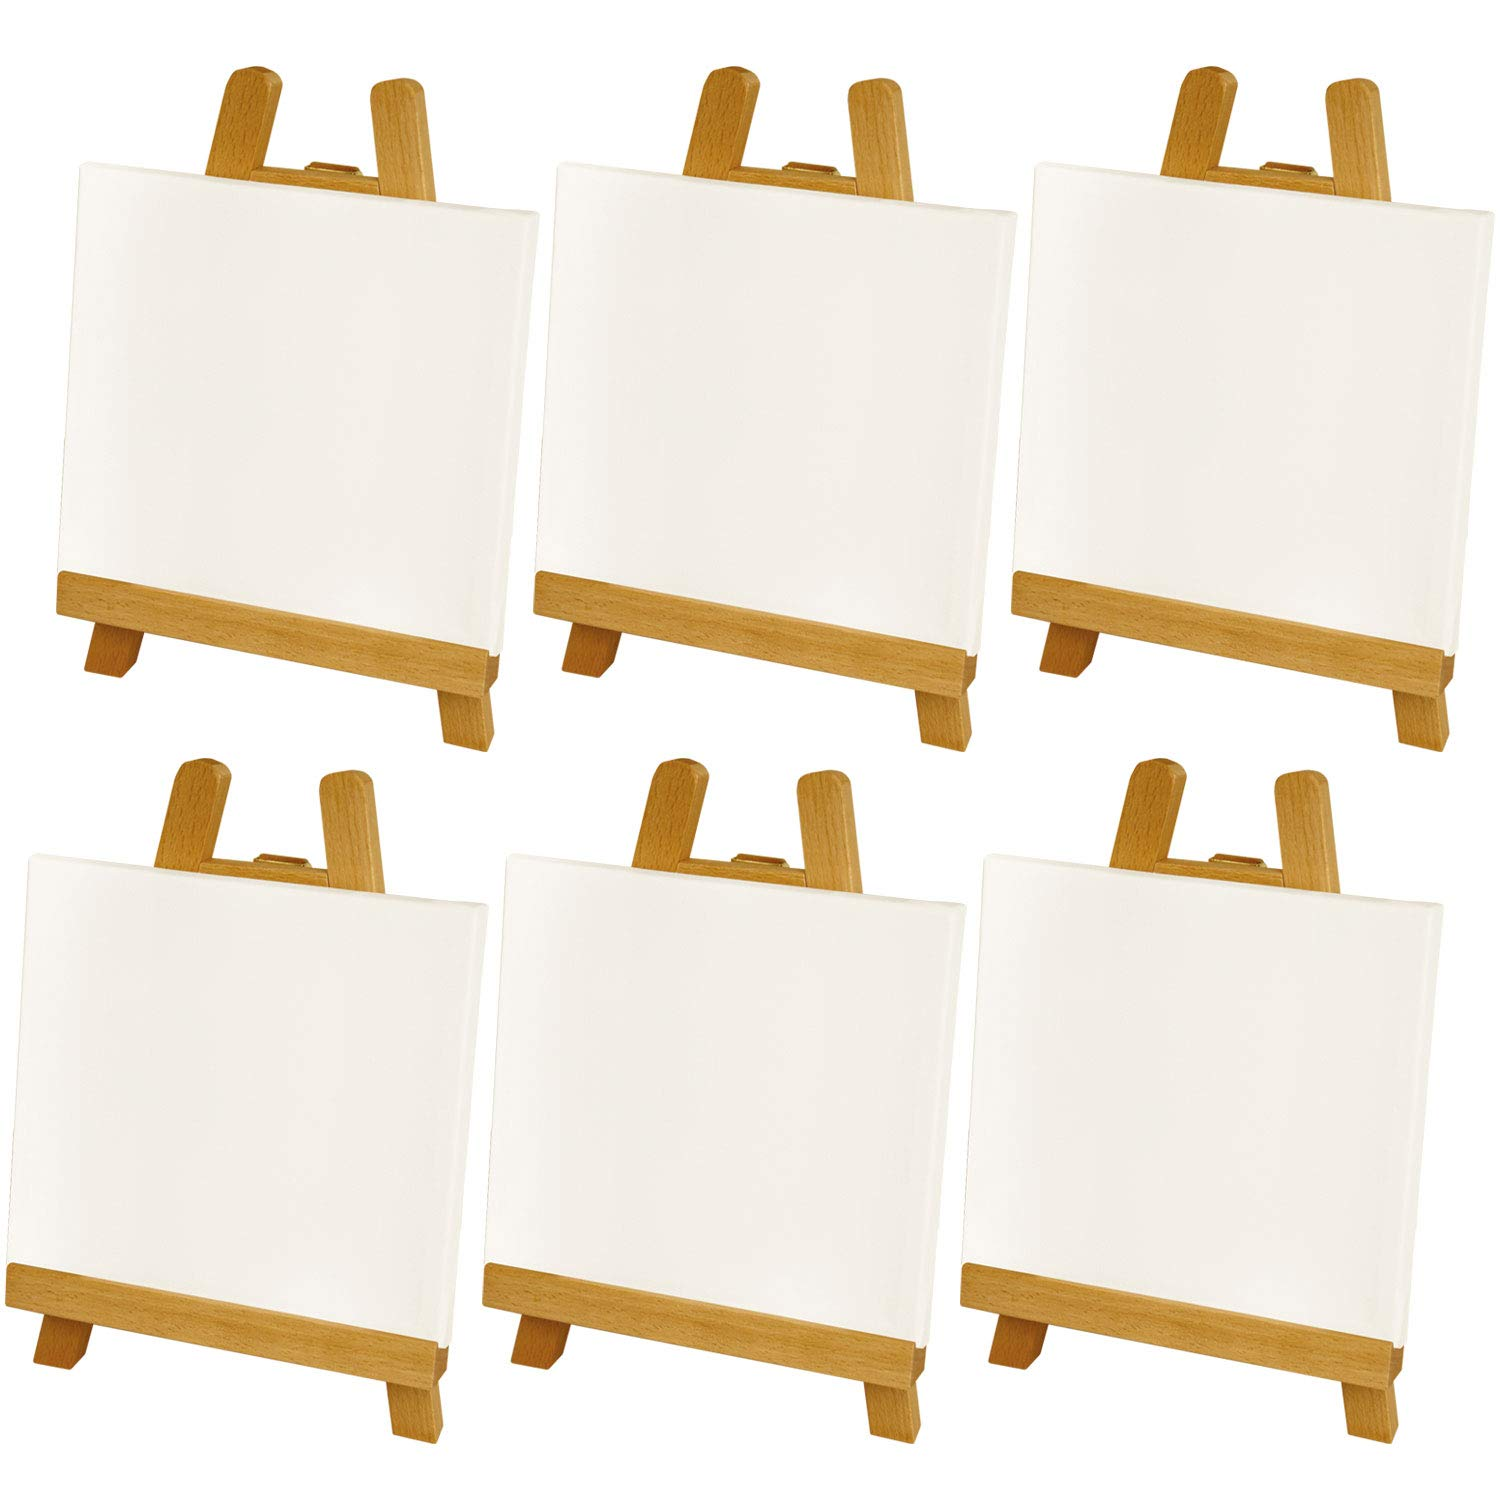 U.S. Art Supply Artists 8''x8'' Stretched Canvas & 10-1/2'' Natural Easel Set Painting Craft Drawing - Set Contains: 6 Canvases & 6 Easels